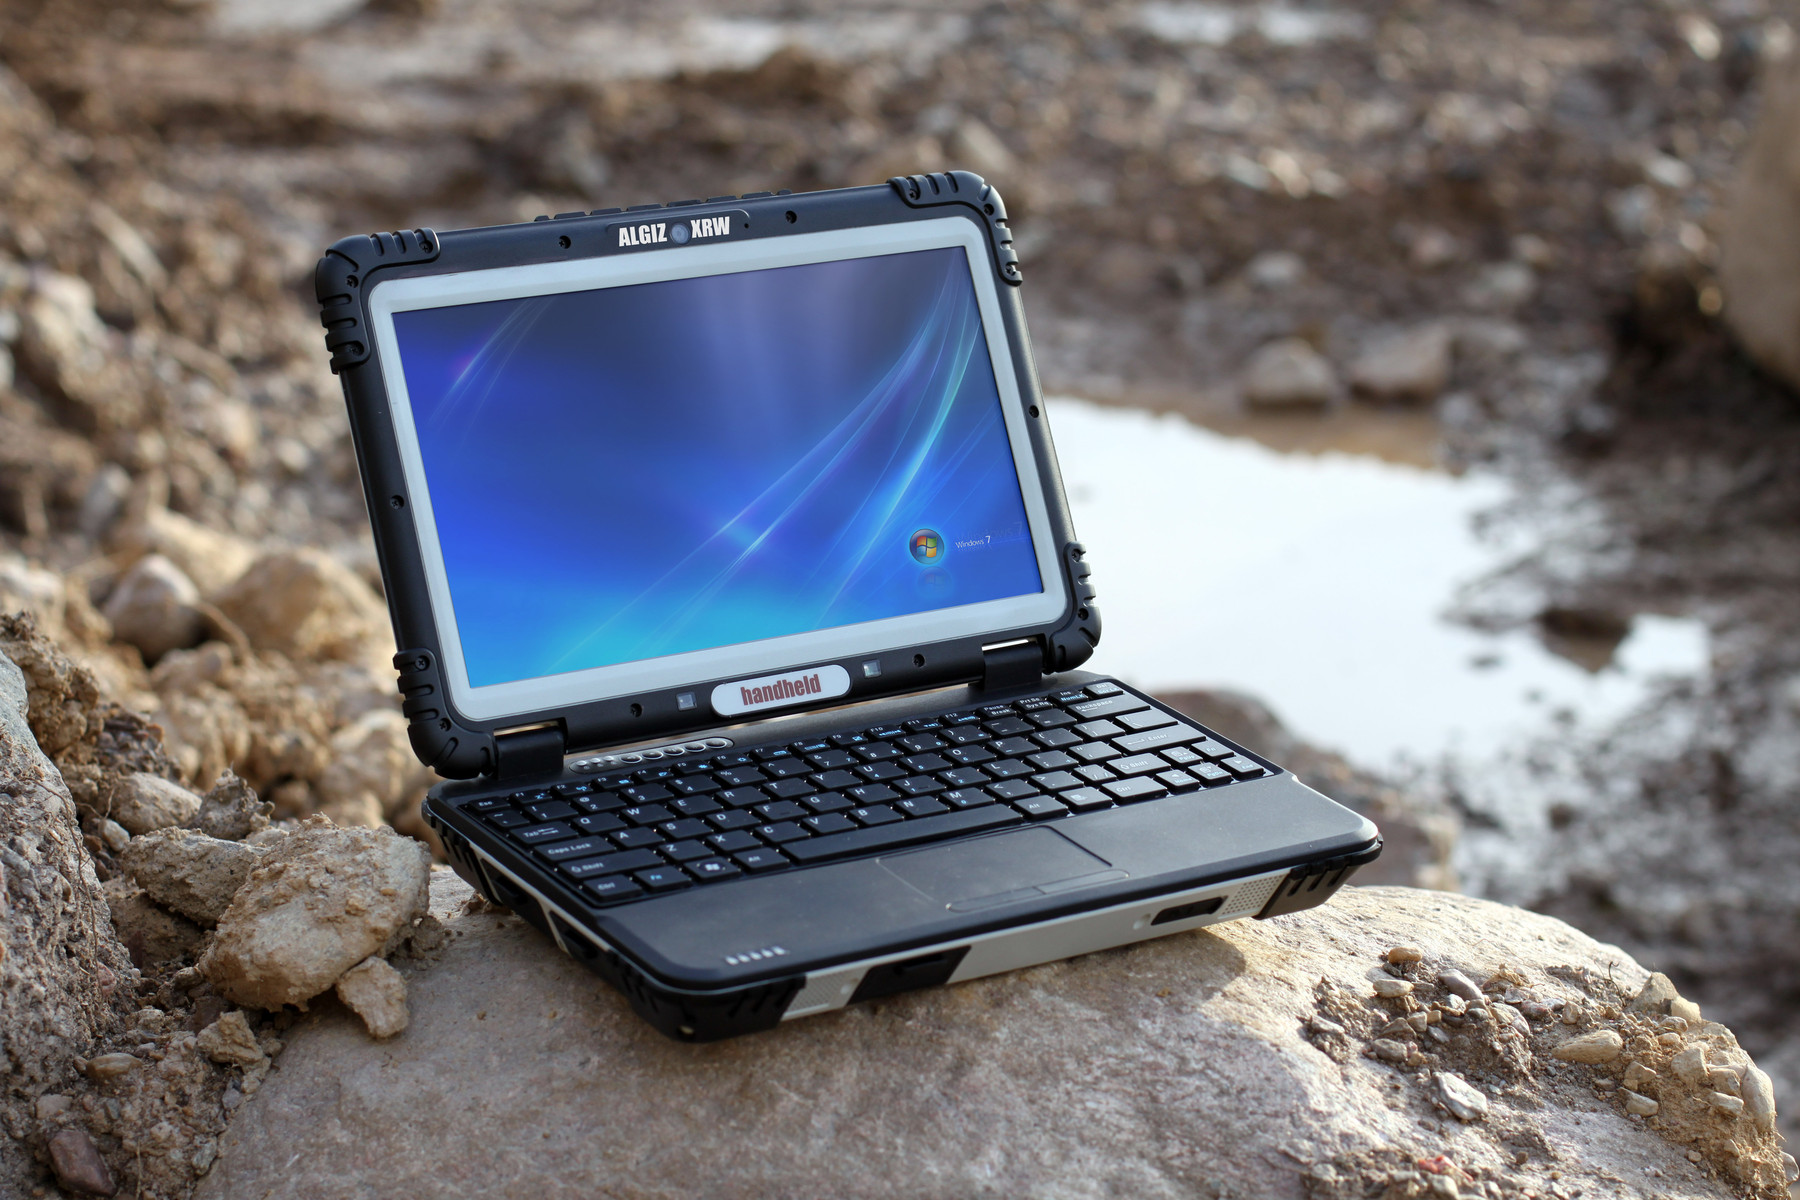 Handheld Intros The Algiz Xrw Rugged Netbook